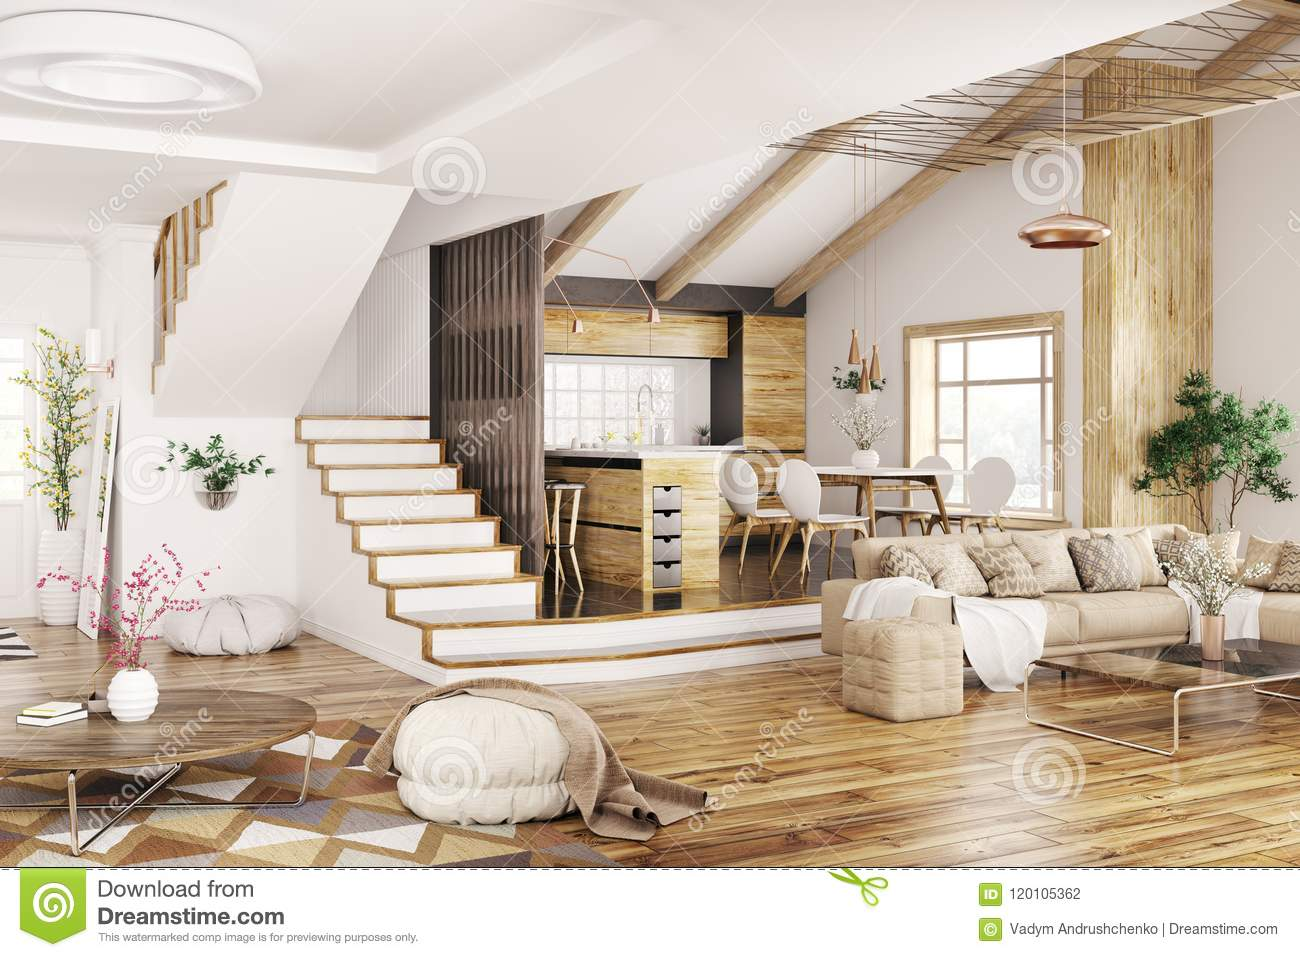 Modern interior design of house kitchen living room with sofa hall staircase 3d rendering